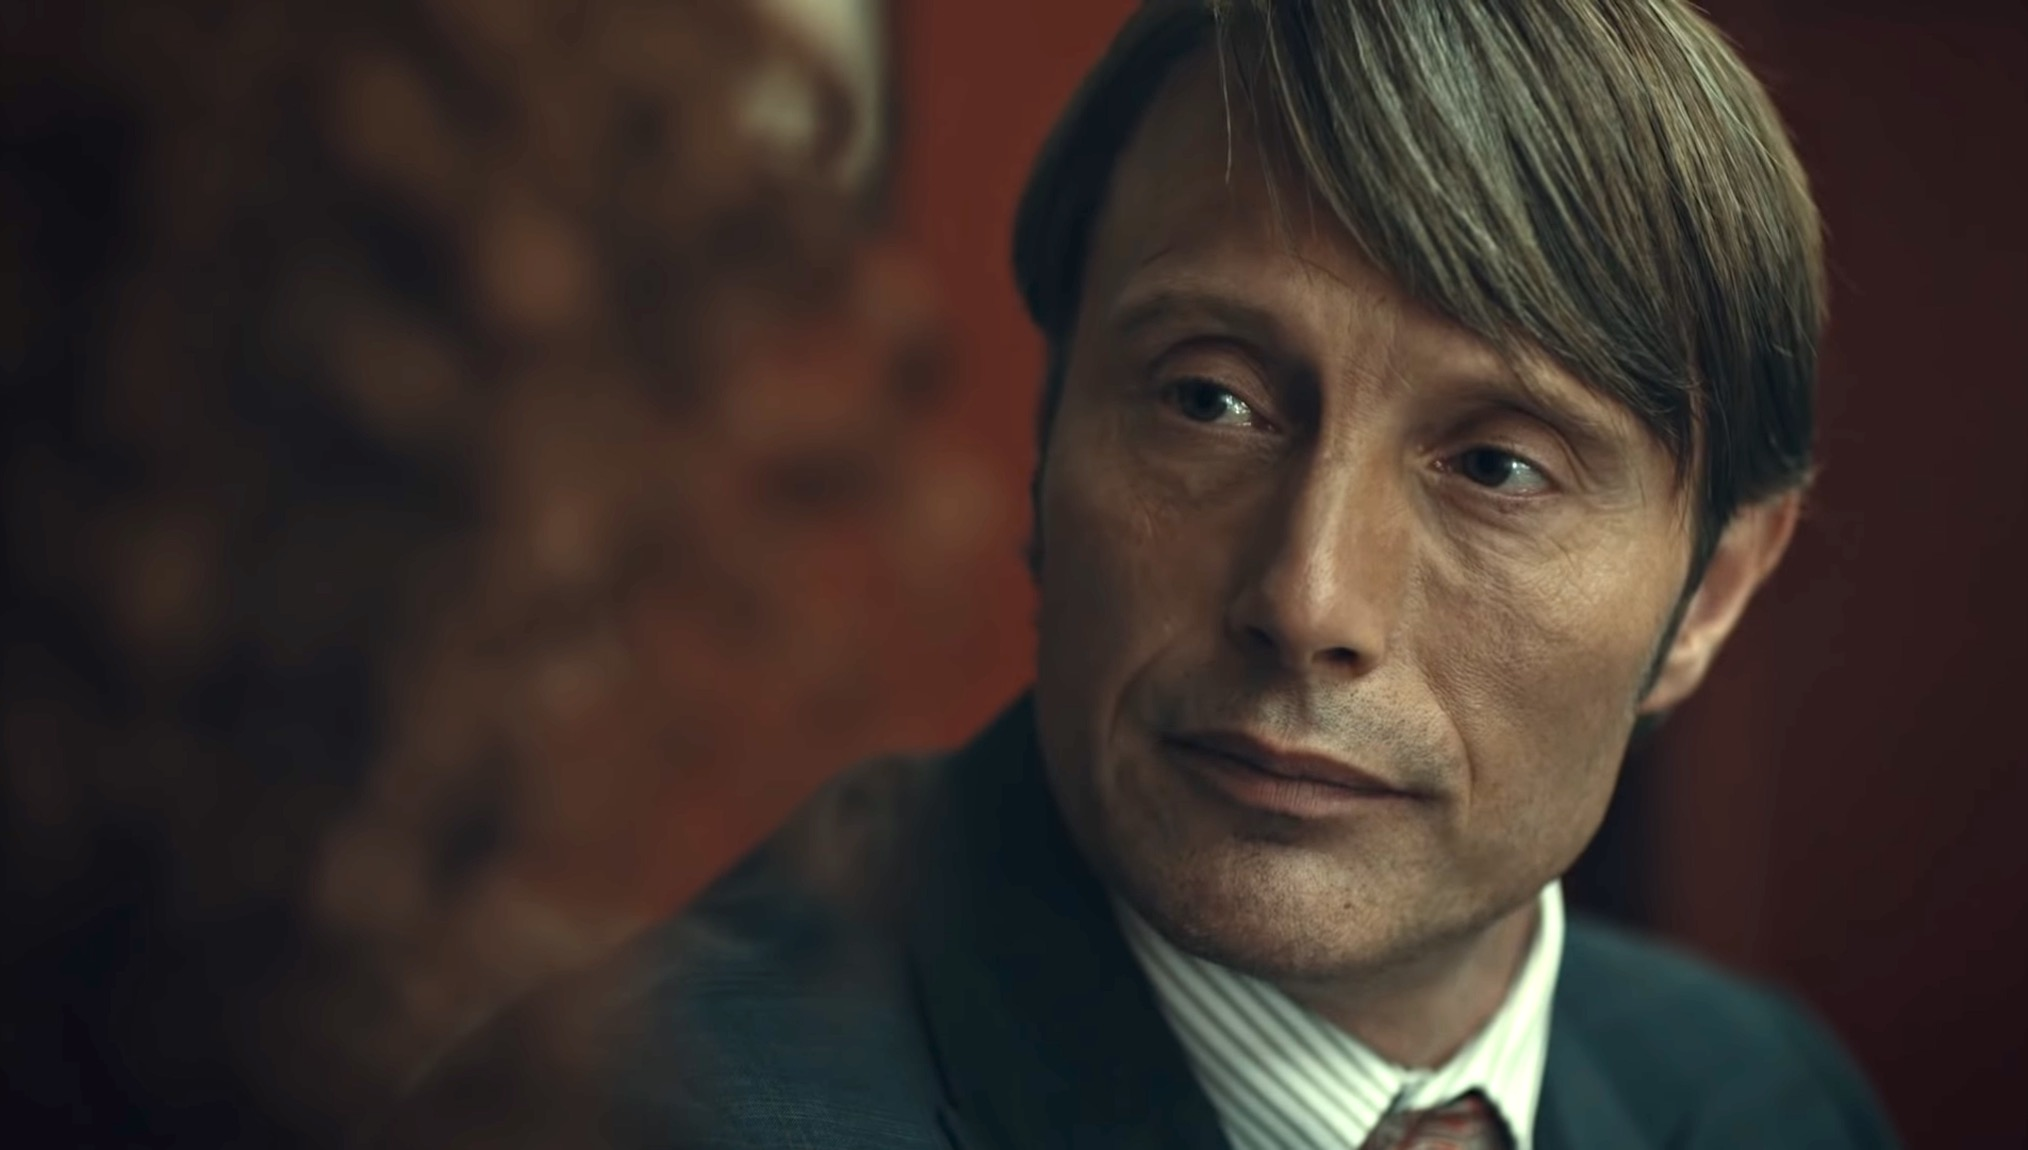 Mads Mikkelsen's 'Hannibal' Season 4 Wish List Includes Buffalo Bill and Surprise Casting